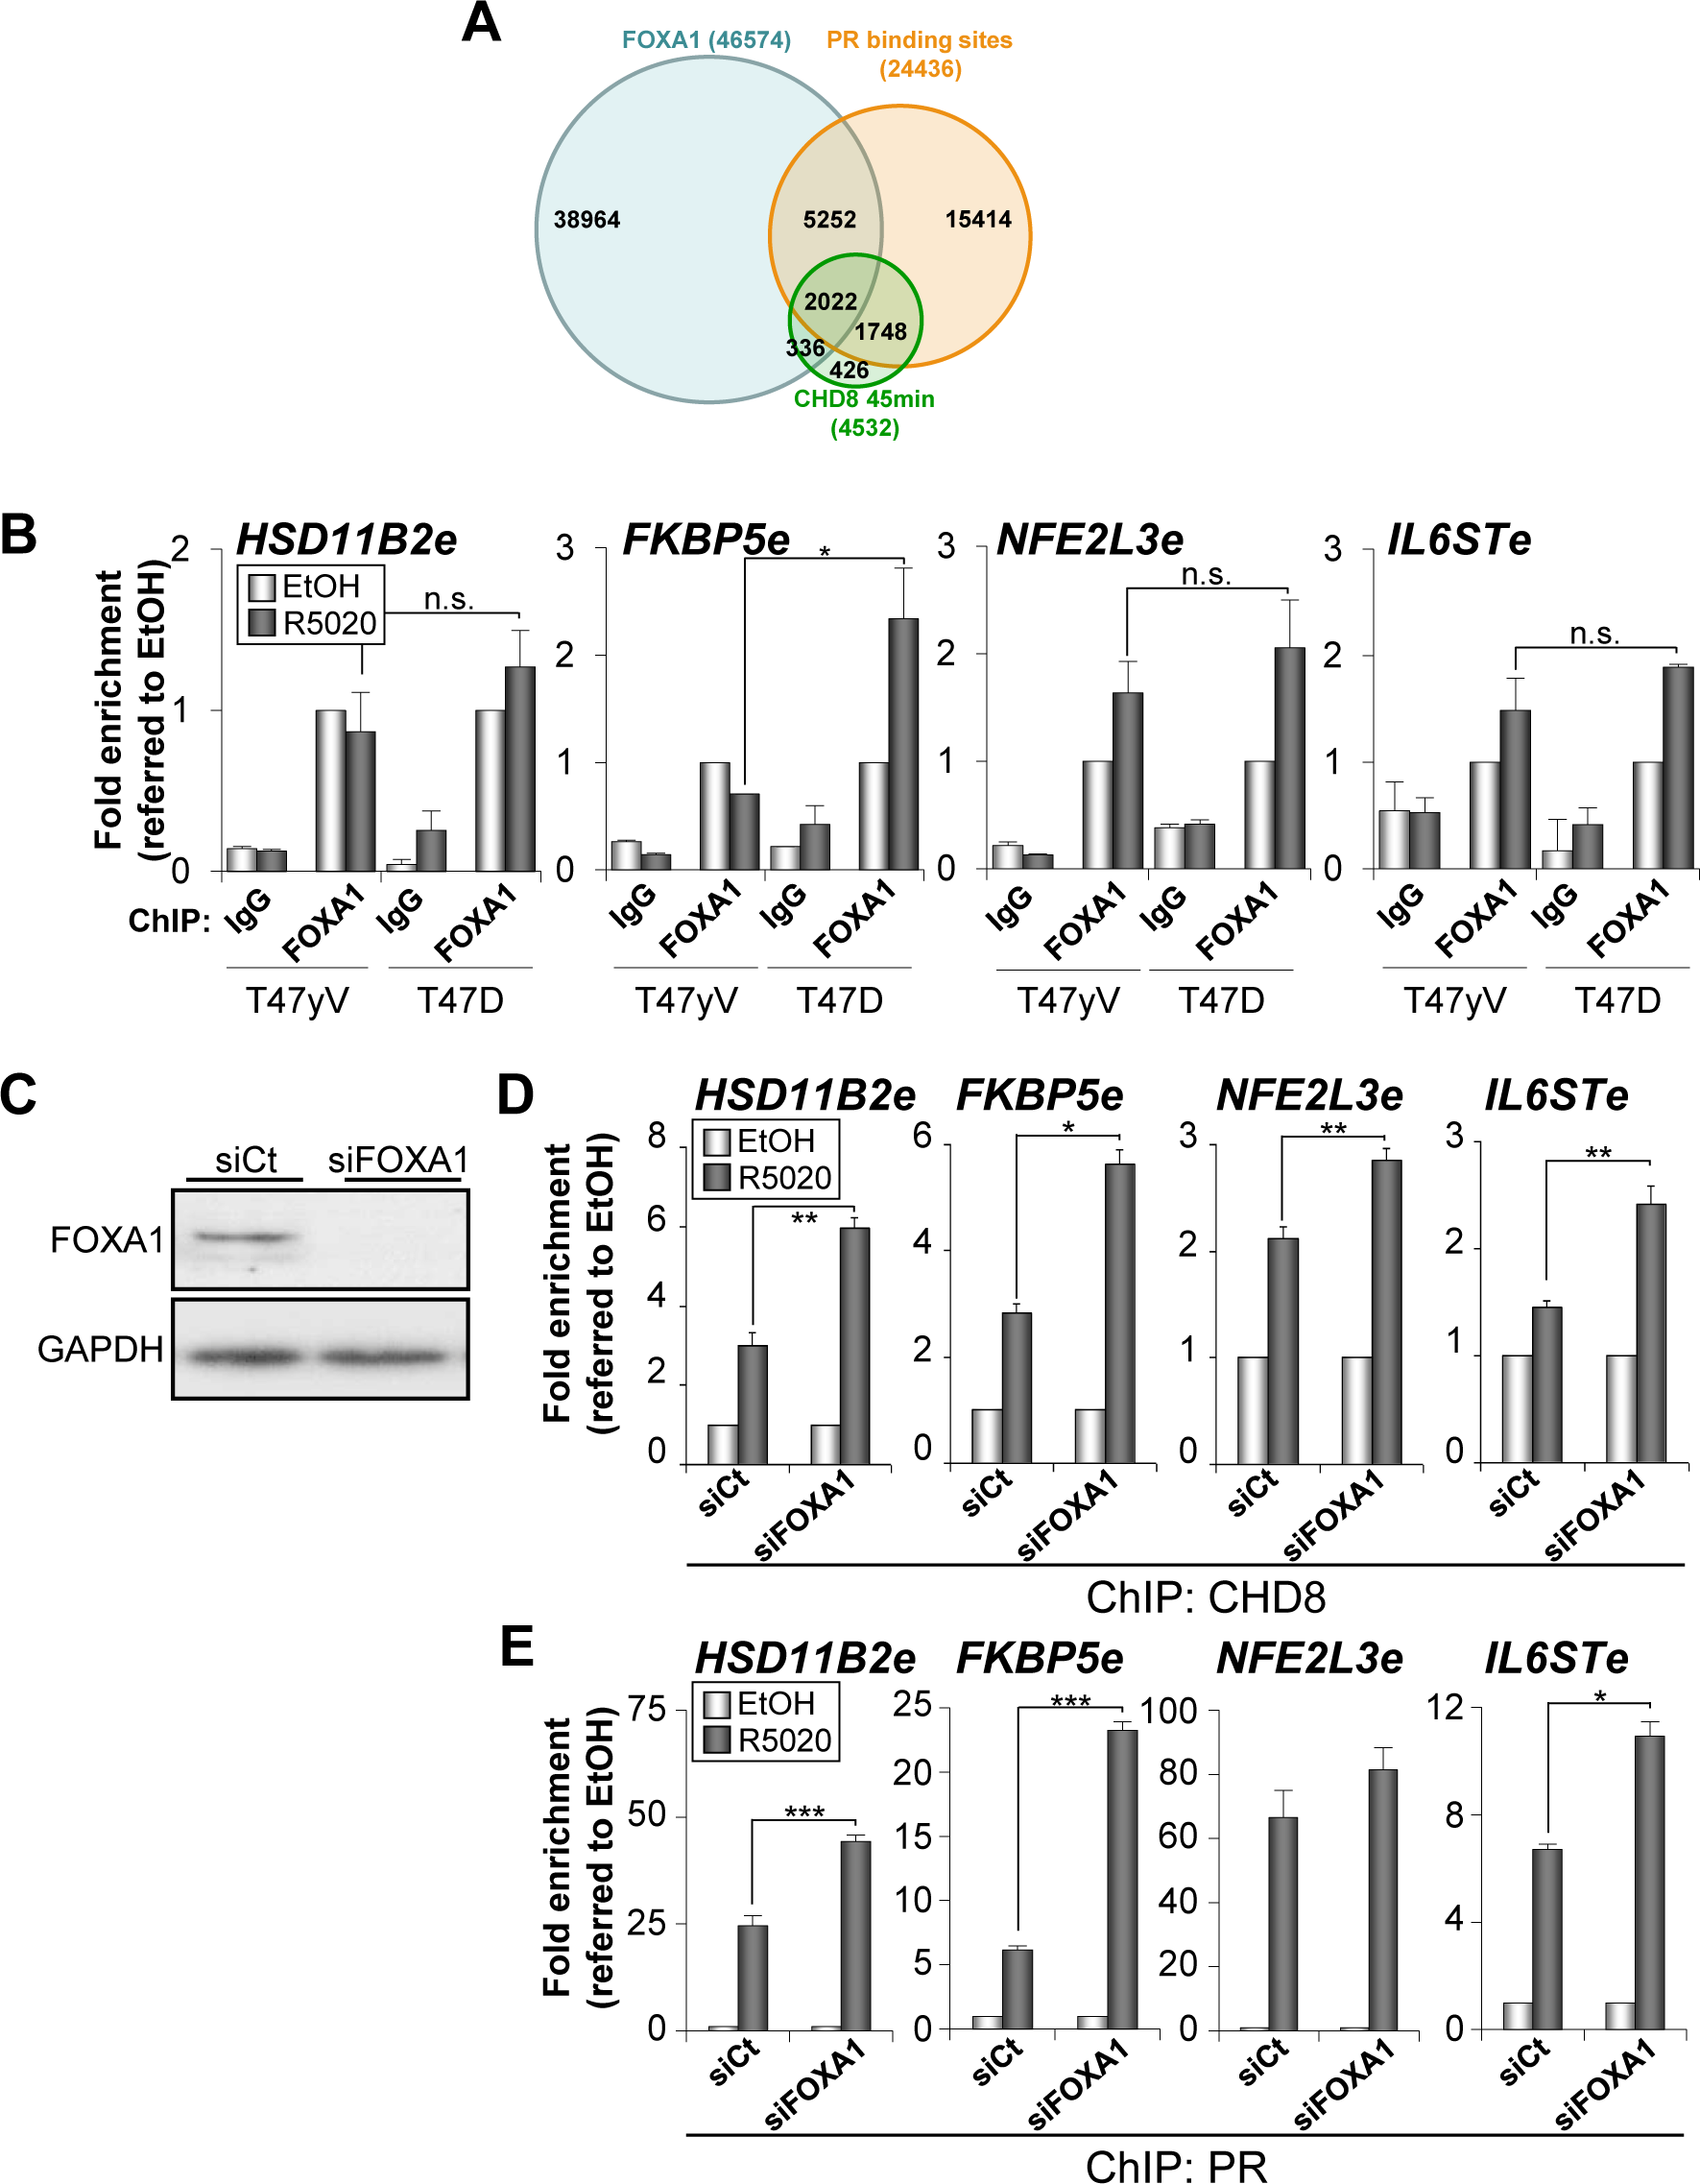 Depletion of FOXA1 stimulates PR and CHD8 recruitment to PRbs.